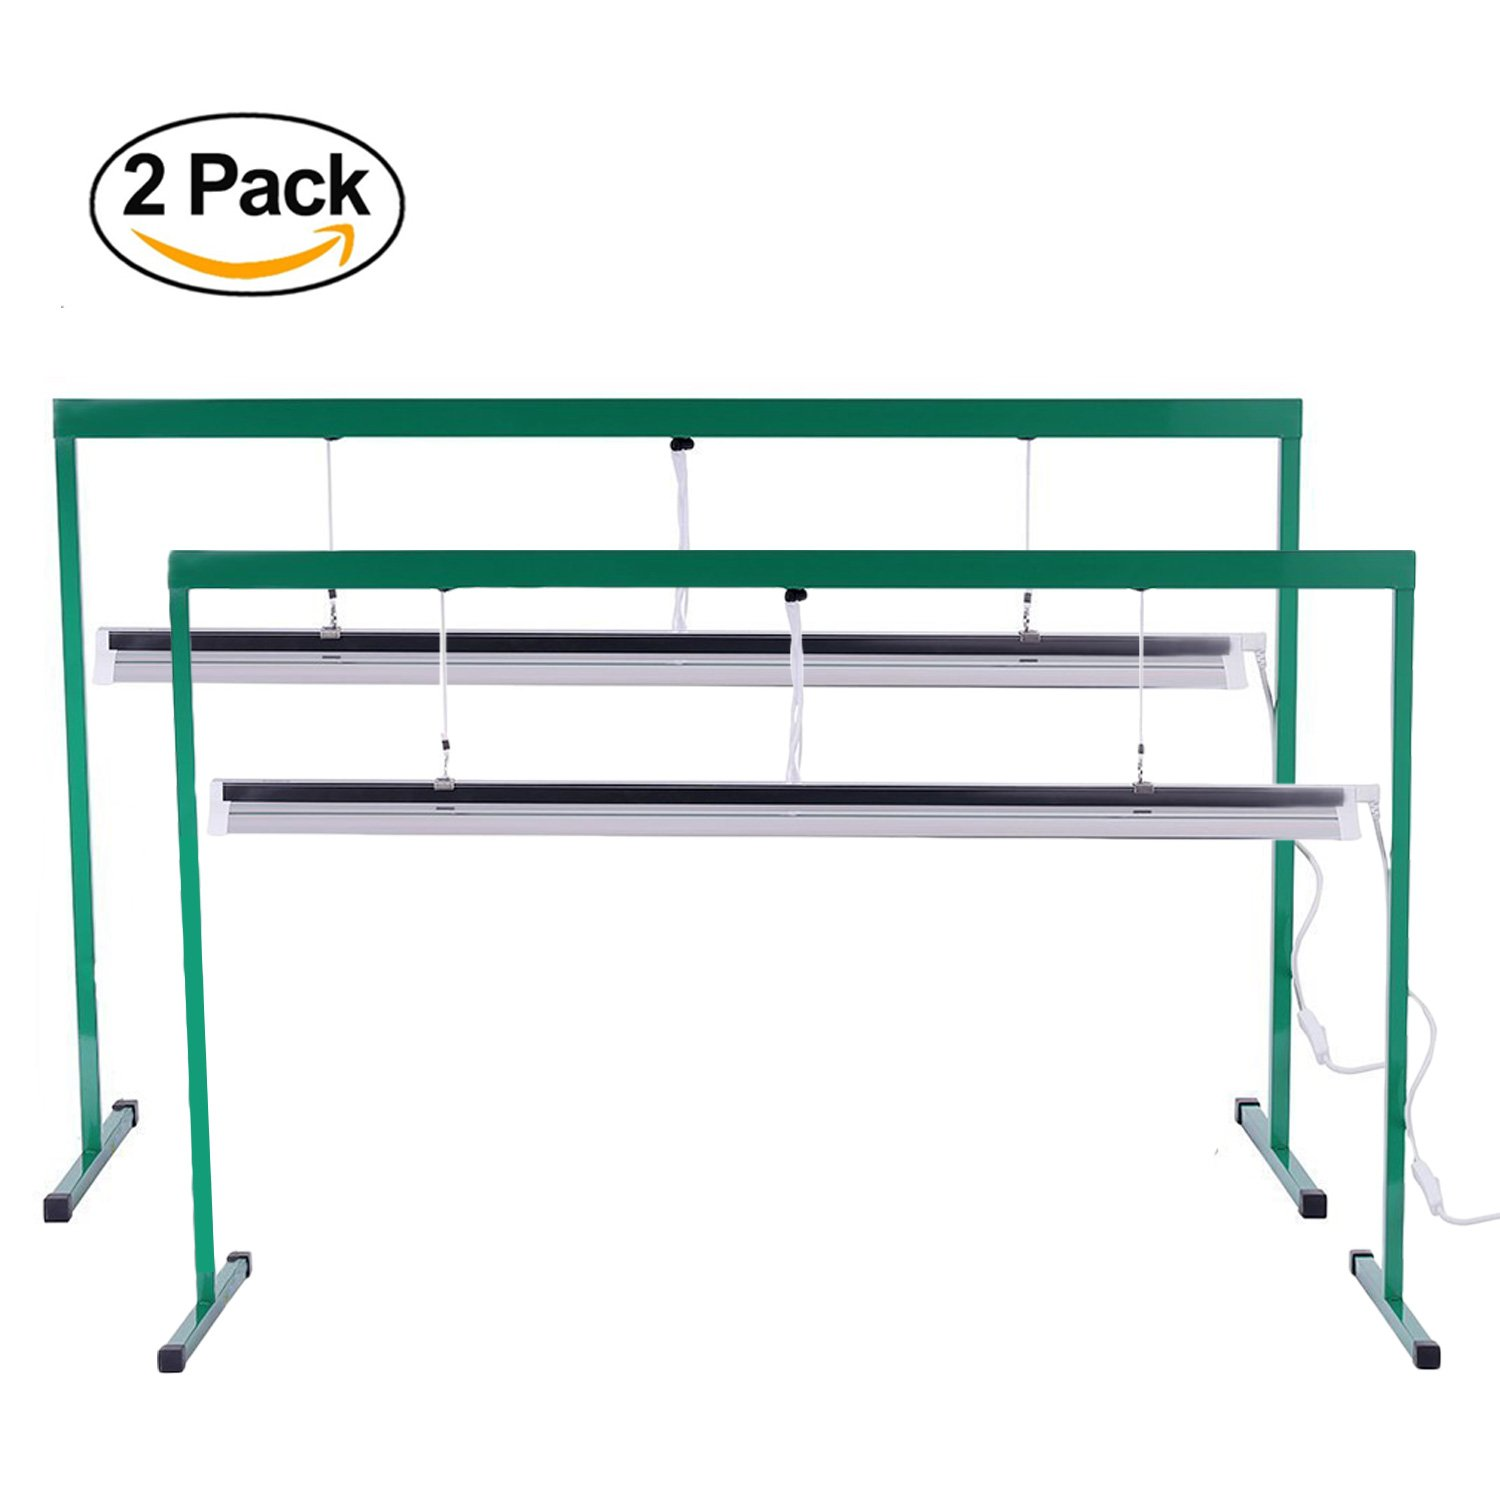 iPower 2-Pack 54W 4 Feet T5 Fluorescent Grow Light Stand Rack for Seed Starting Plant Growing, 6400K